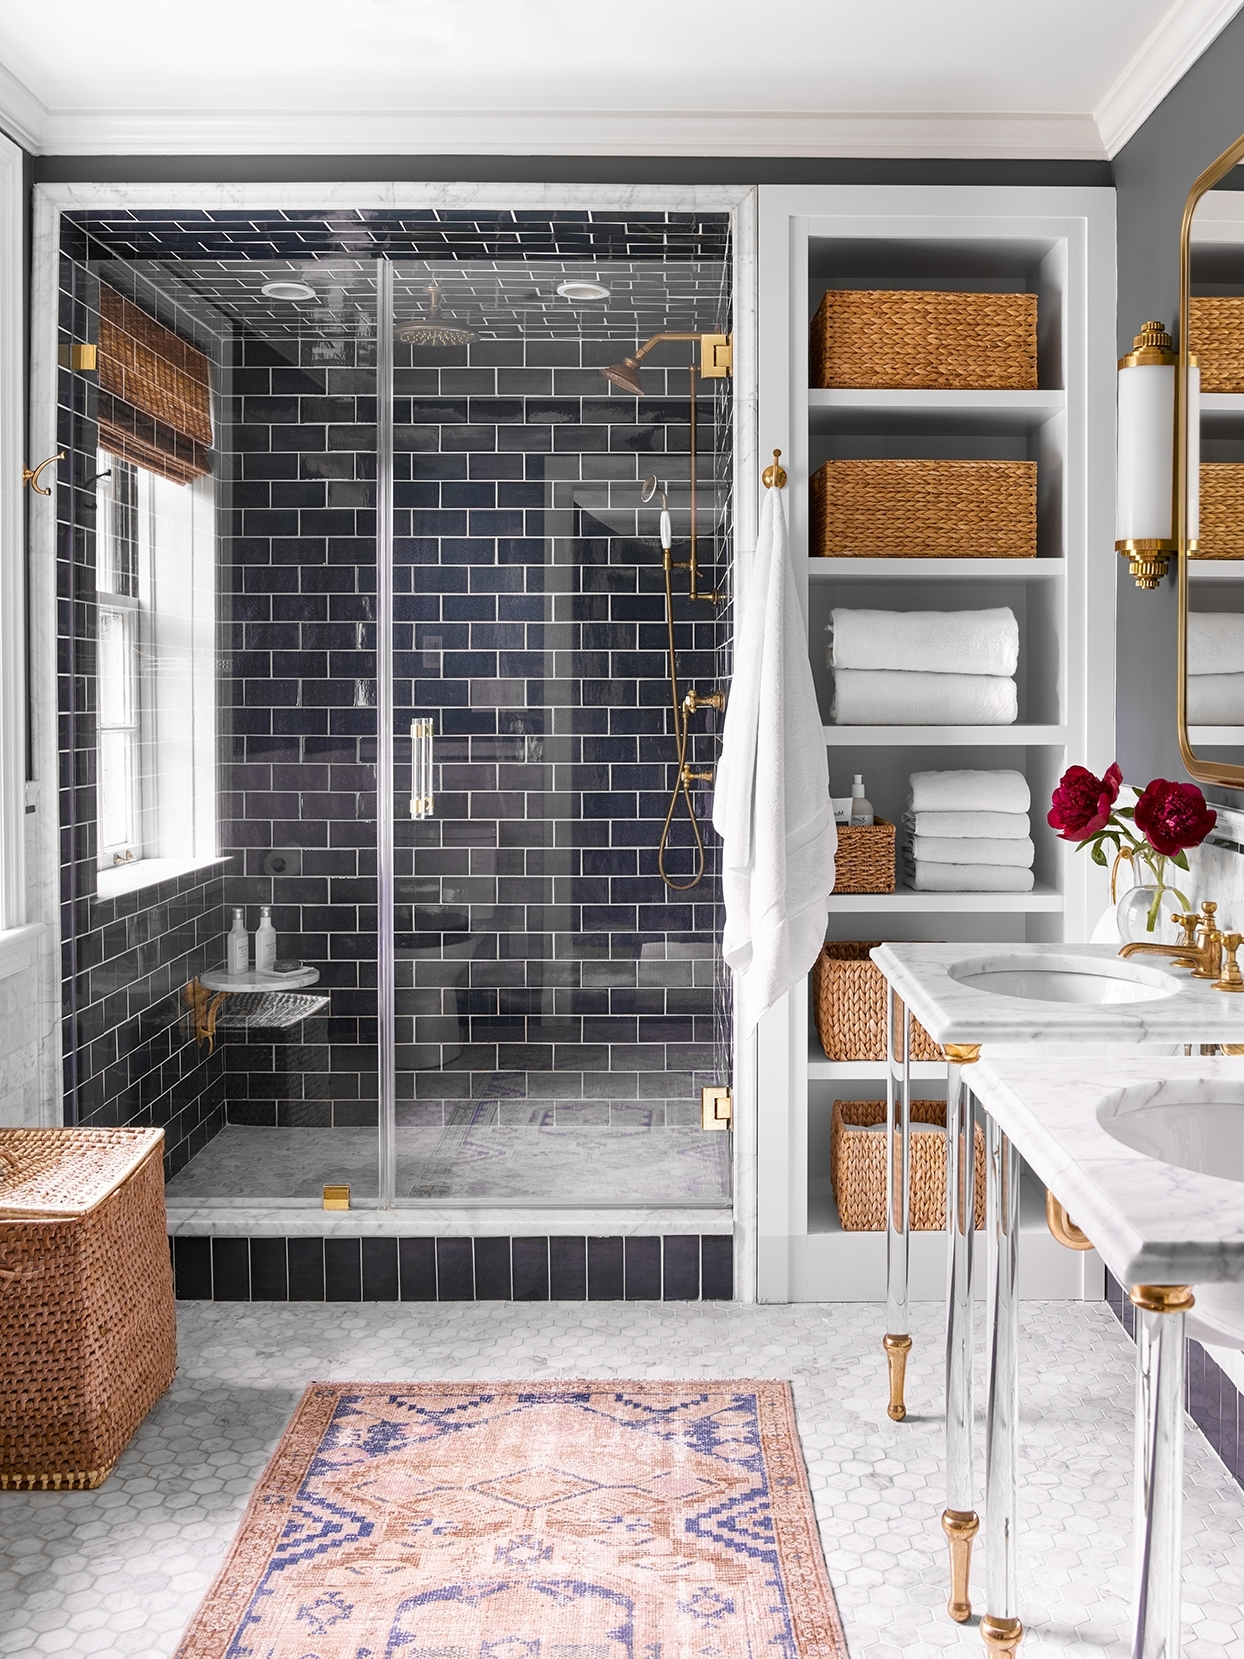 How To Plan A Bathroom Layout For A Functional Space 40+ Universal Bathroom Design Guidelines Inspirations